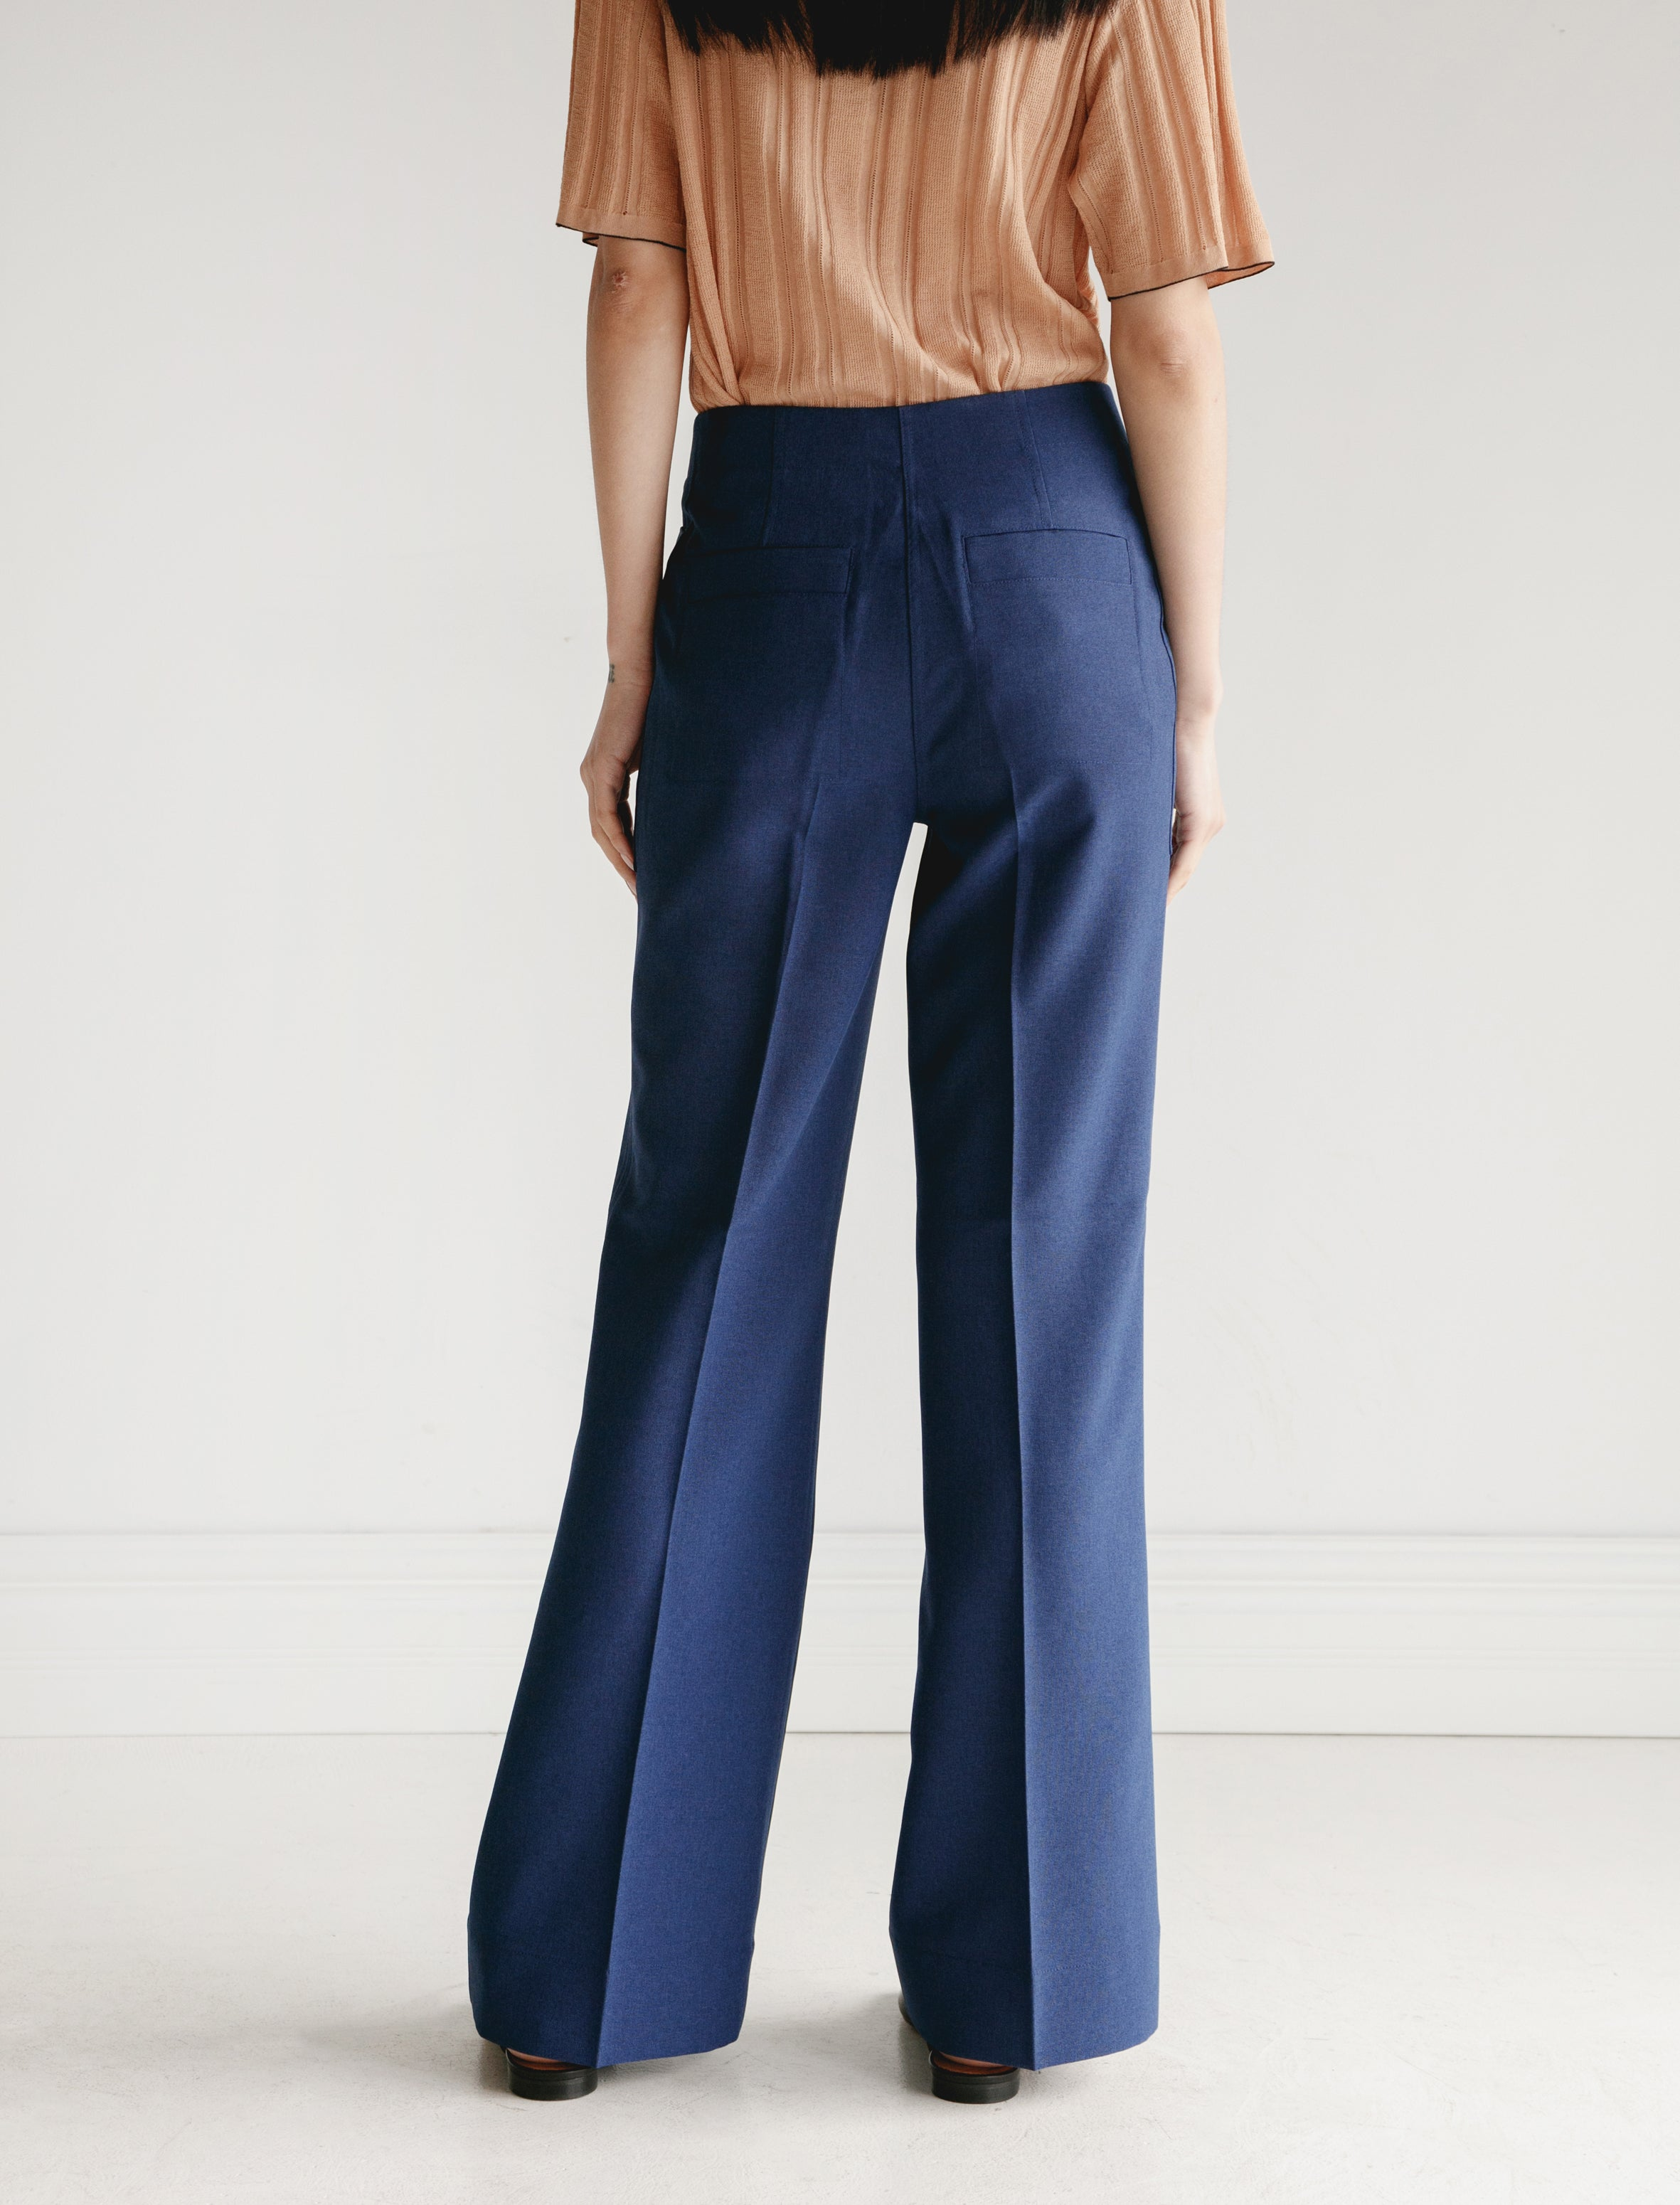 Acne Studios Portia Trousers Workwear Blue